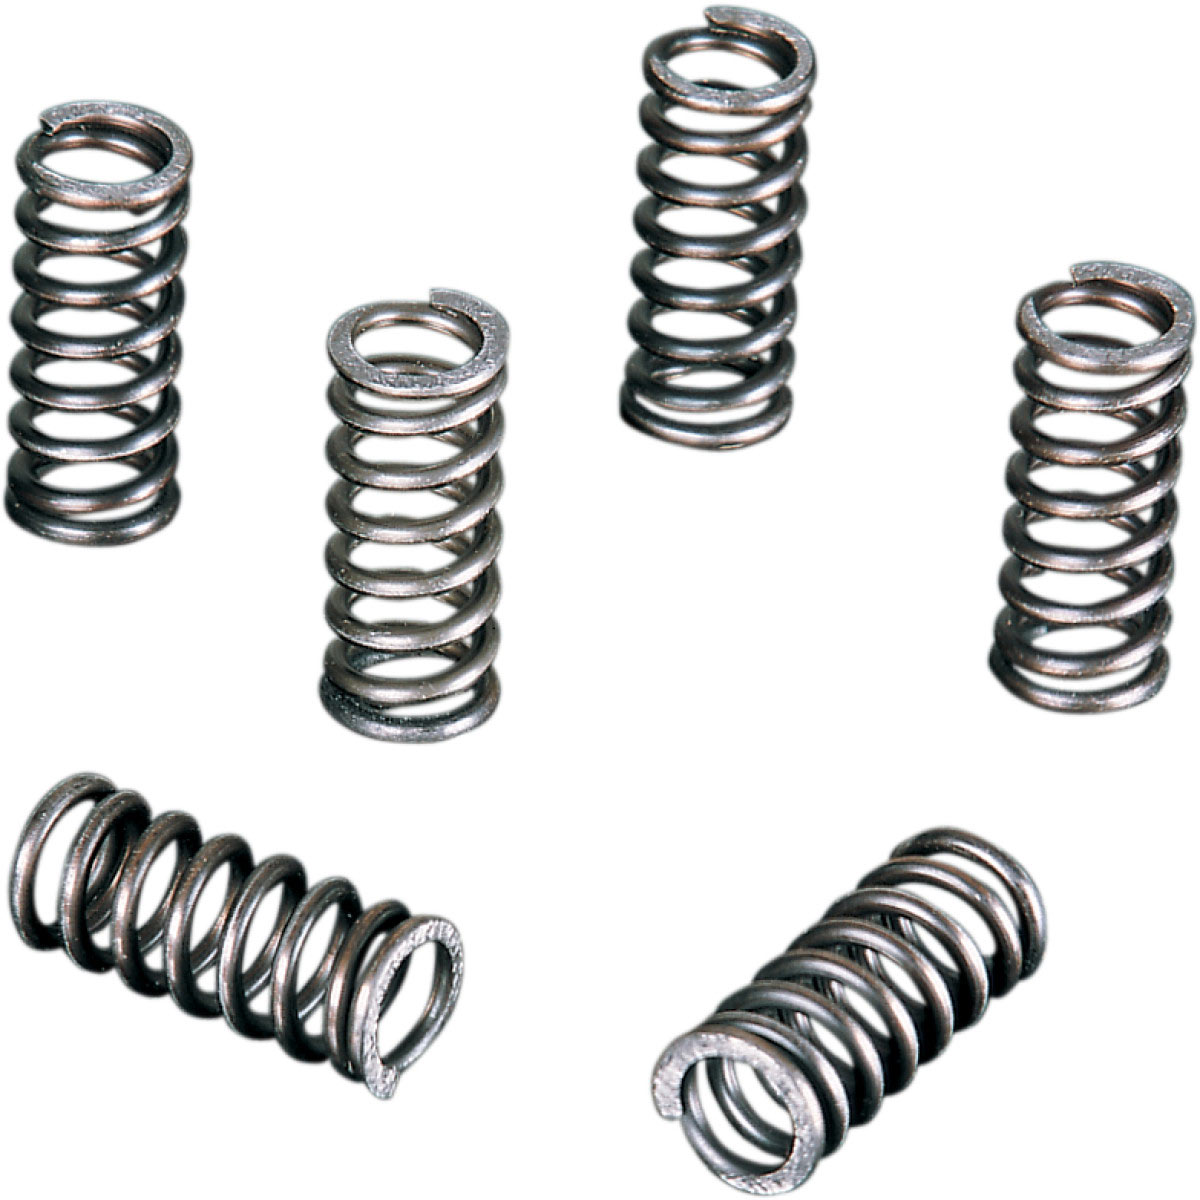 Vesrah Heavy-Duty Clutch Spring Set for VZ800 Marauder 97